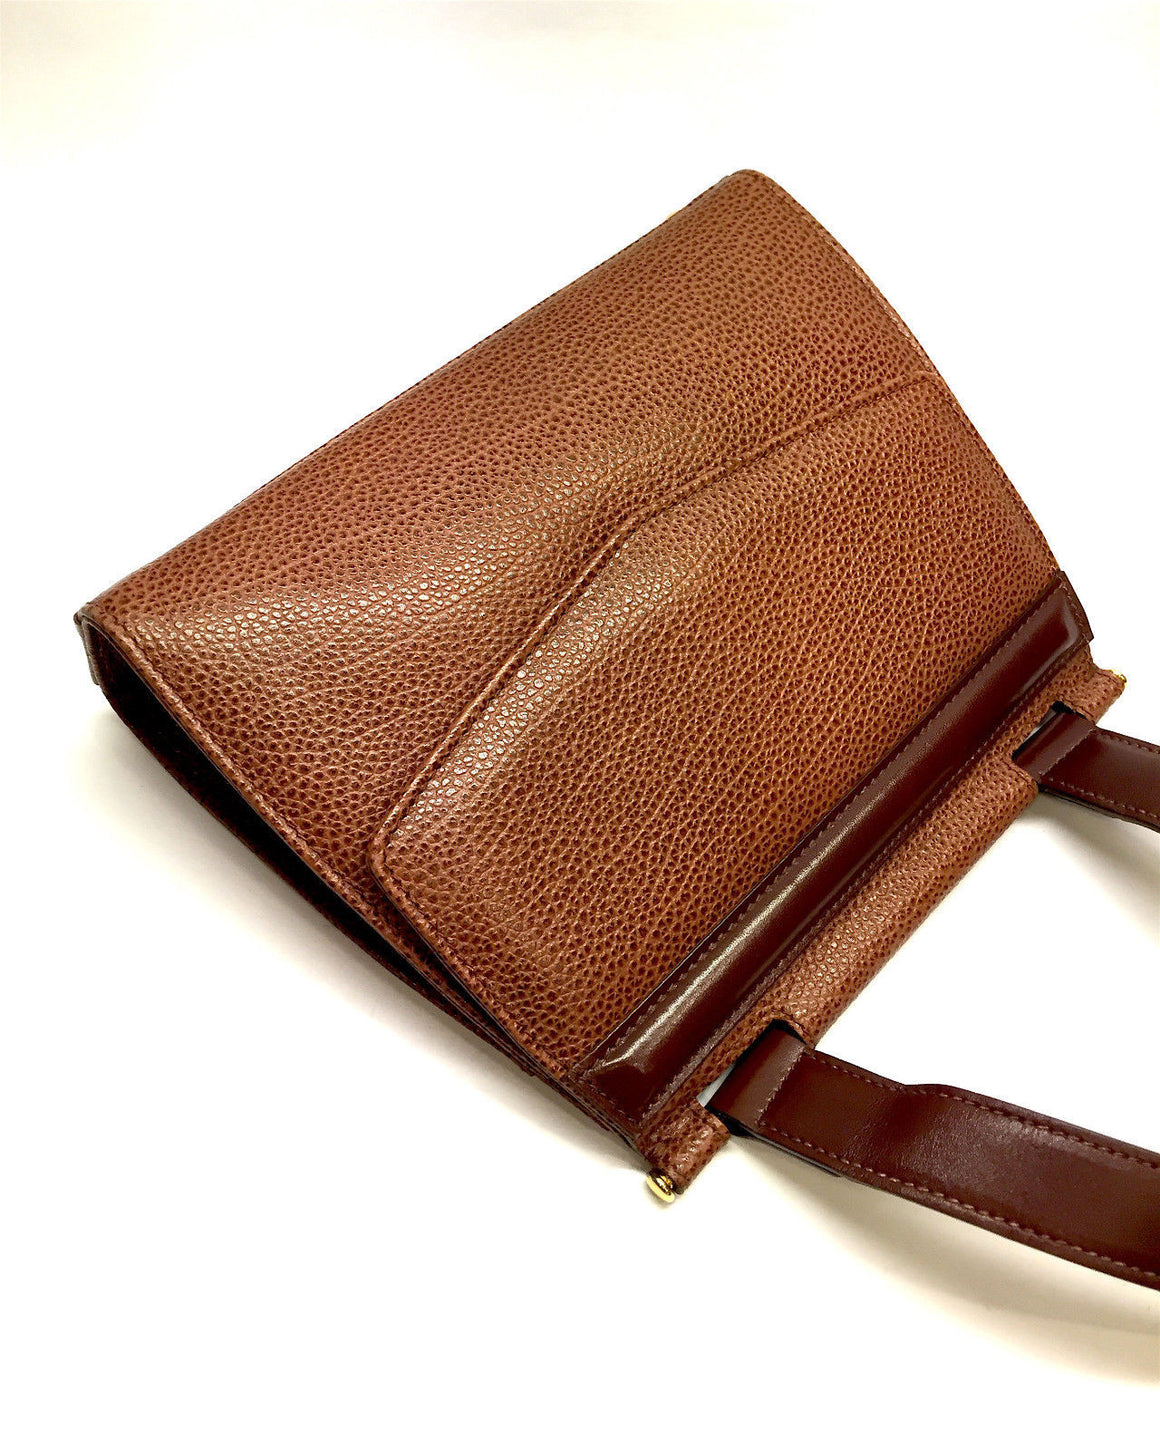 bisbiz.com REVILLON Vintage Rare Cognac-Brown Caviar Leather Cross Body Should Bag - Bis Luxury Resale